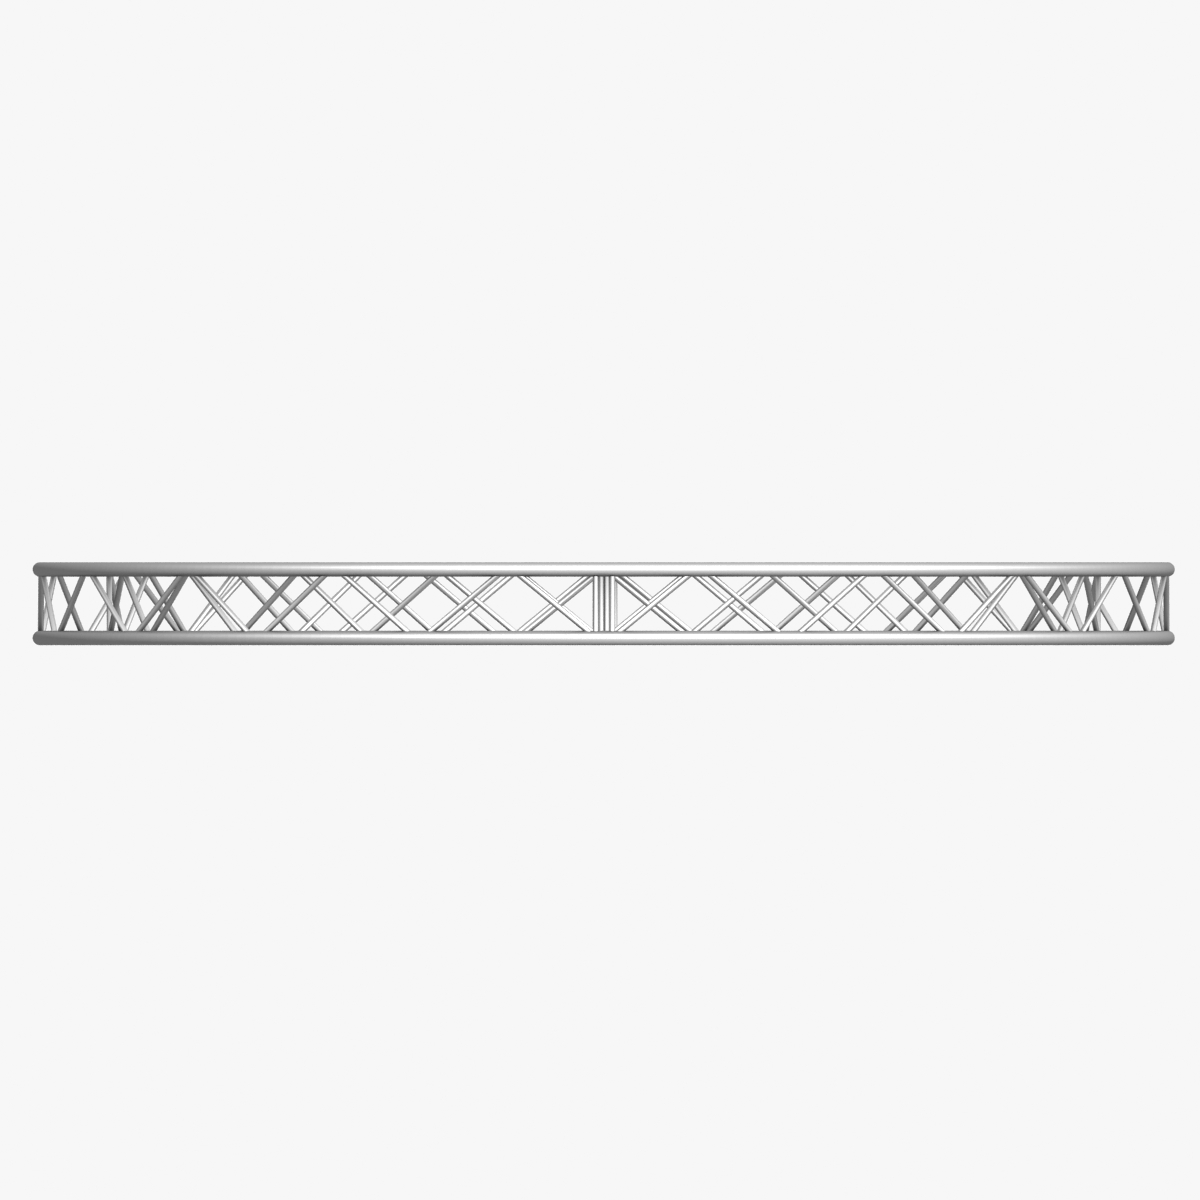 circle square truss (400cm) 3d model max fbx obj 218634